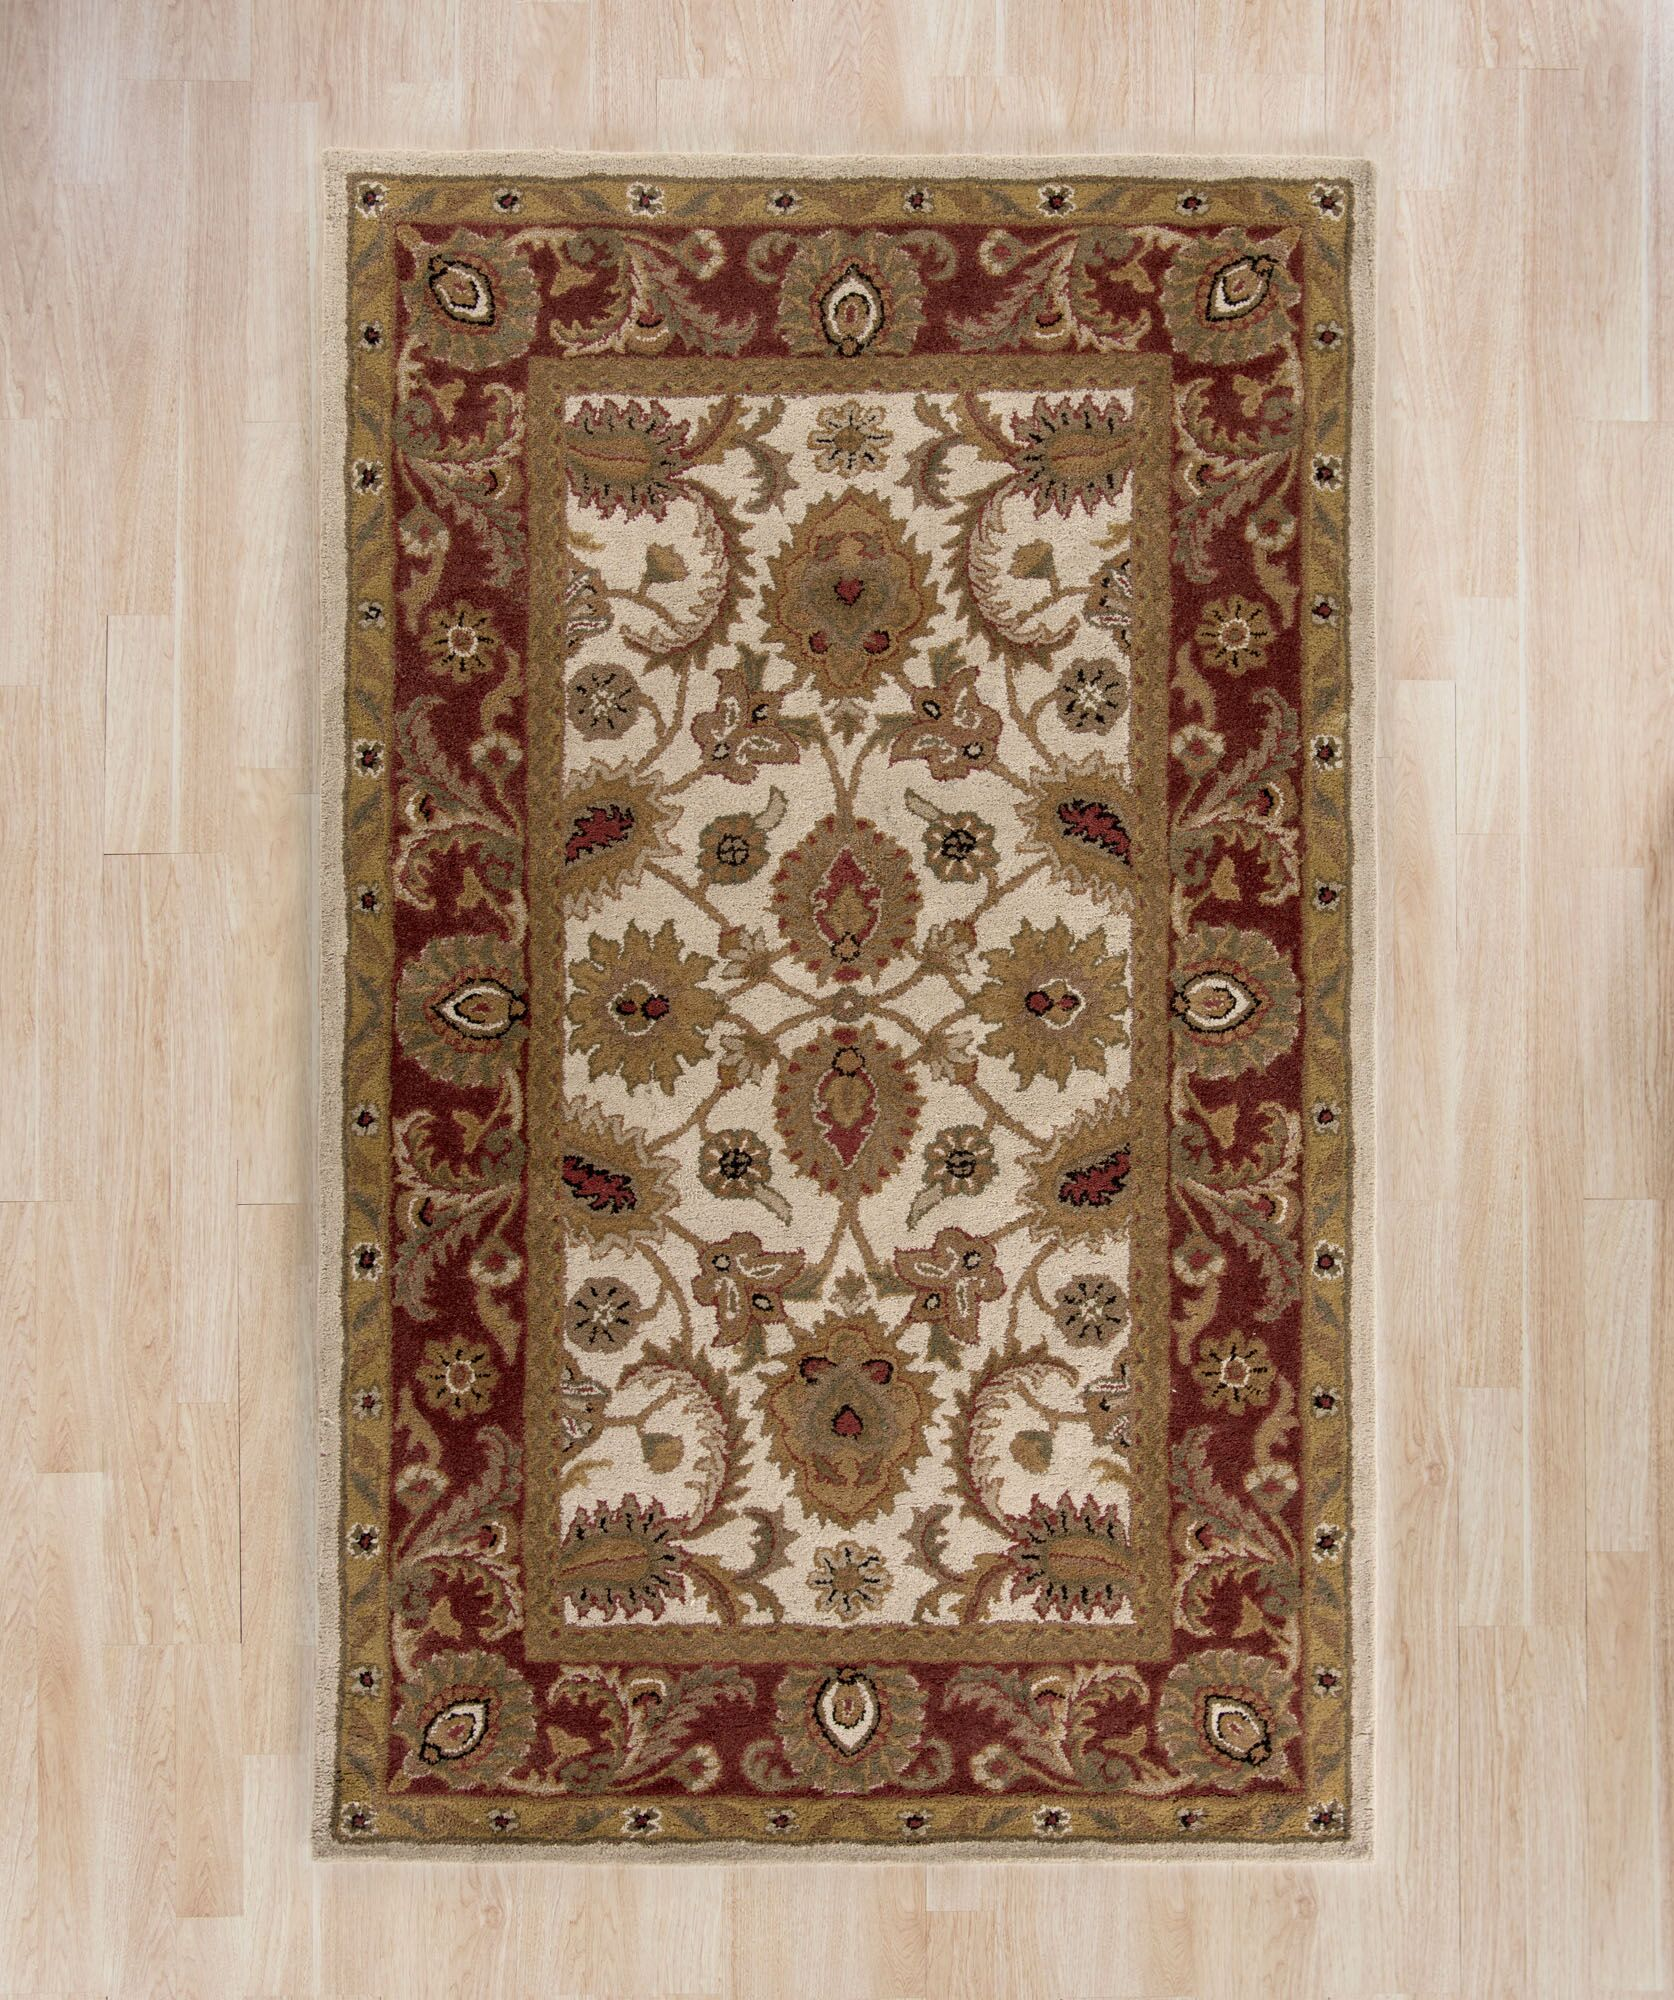 Bromley Hand-Tufted Wool Ivory/Red Area Rug Rug Size: Rectangle 9'6